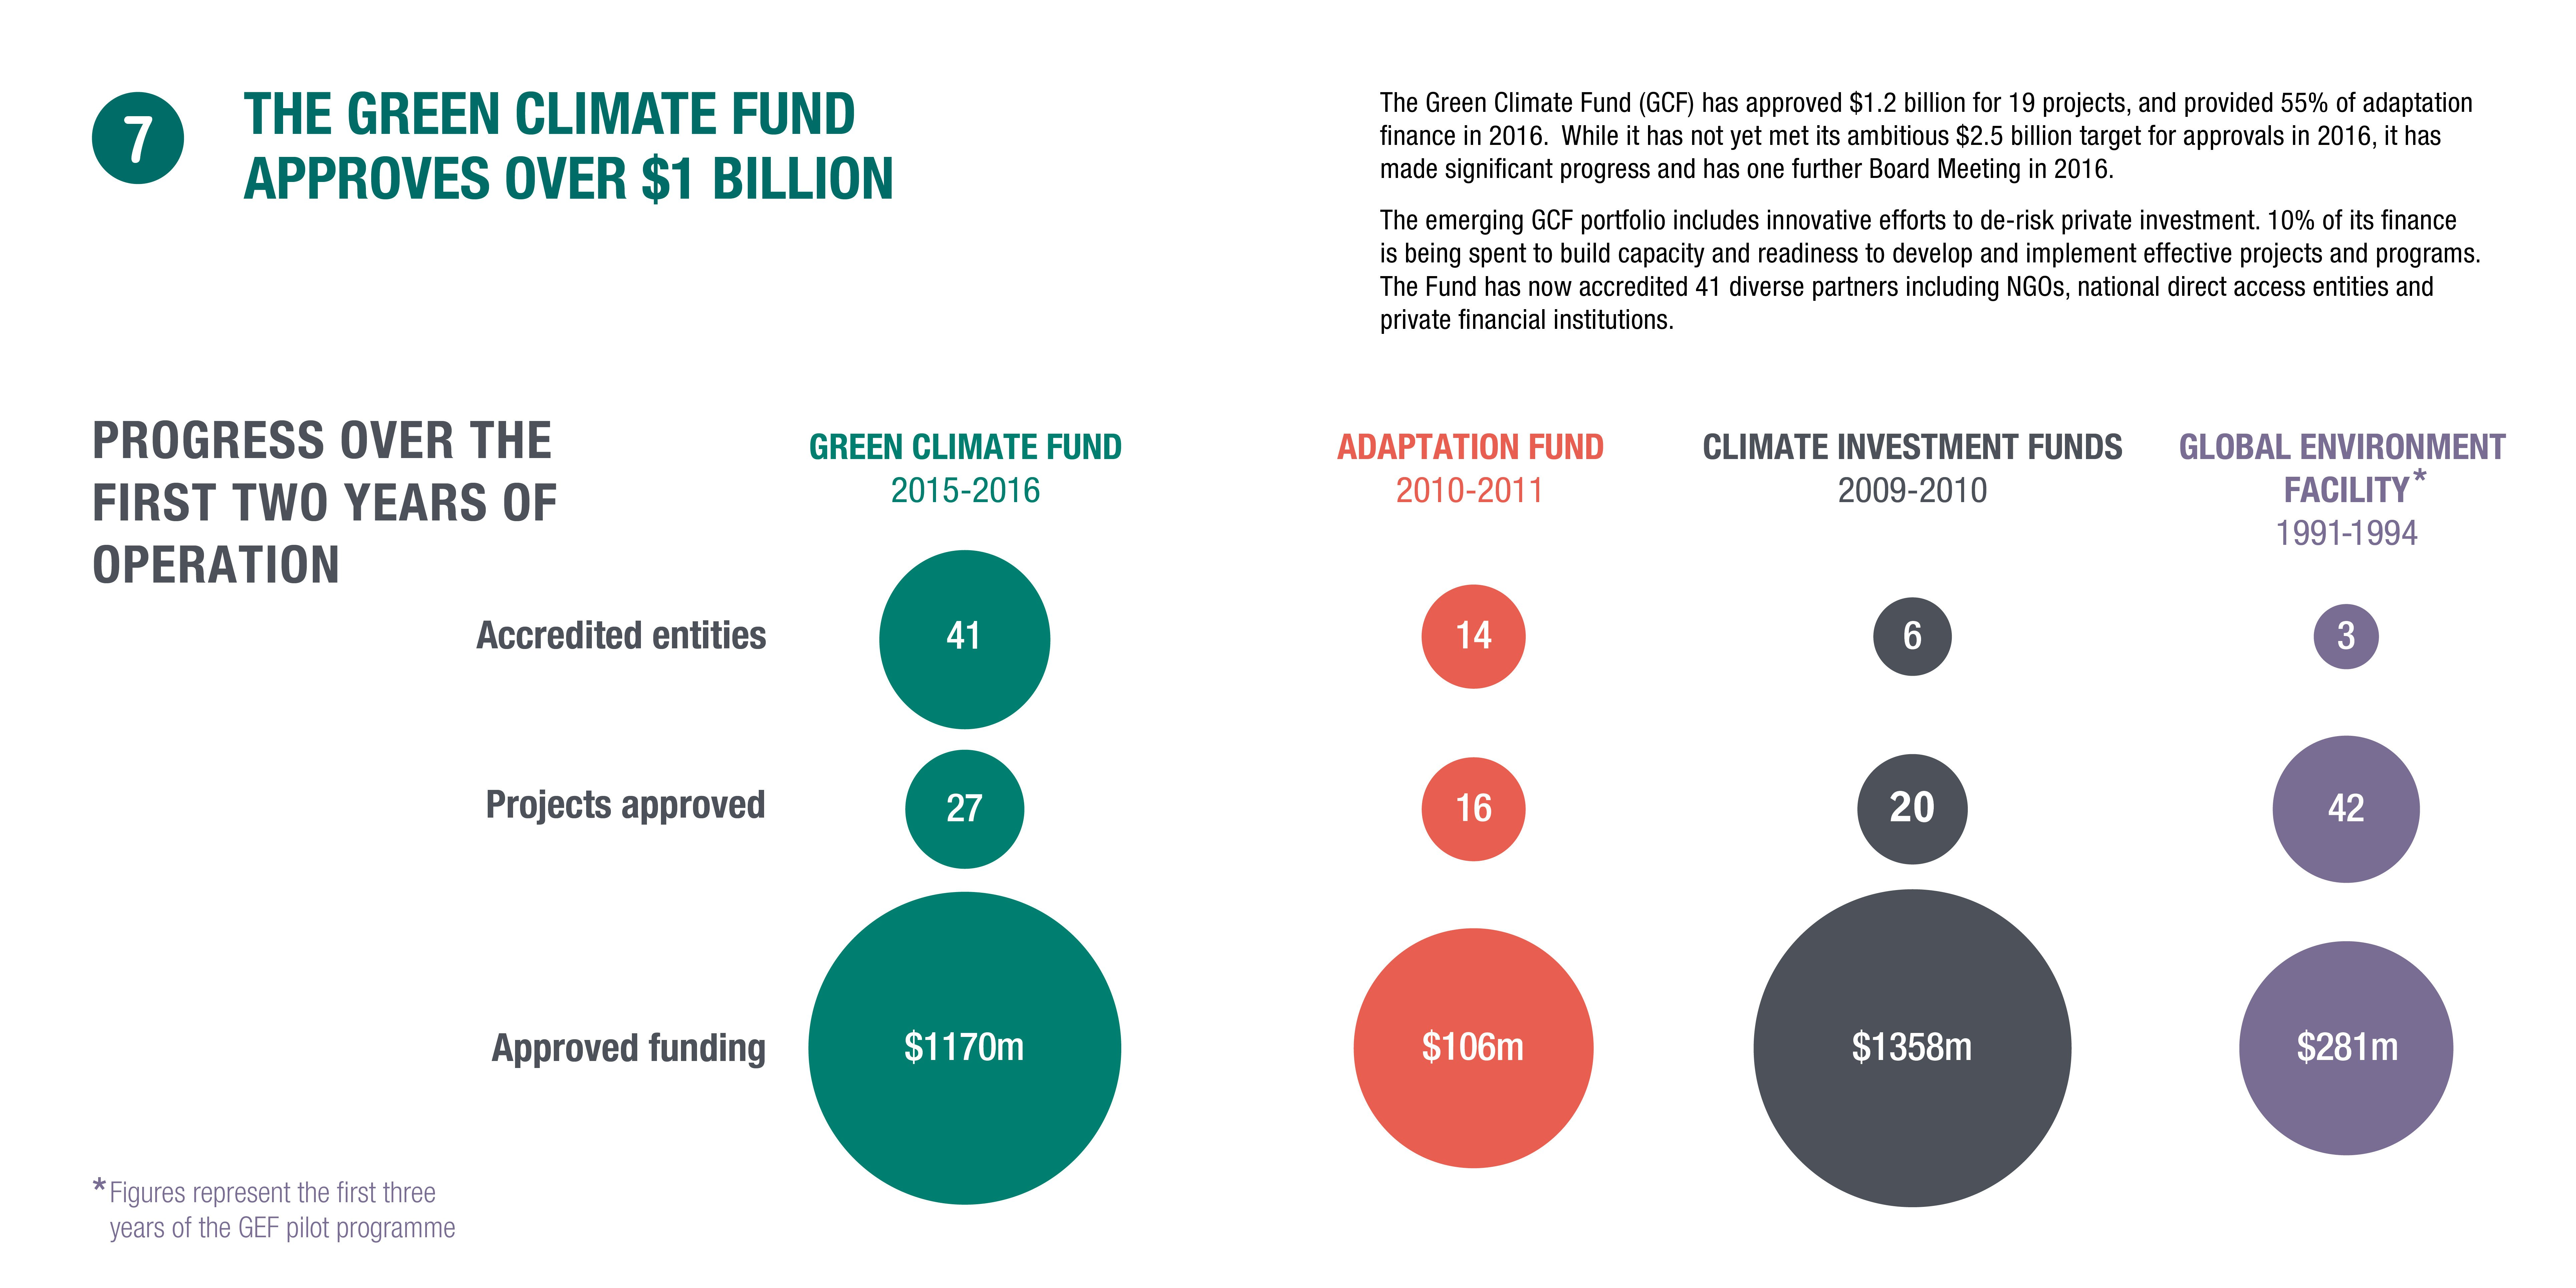 Infographic: the Green Climate Fund approves over $1 billion